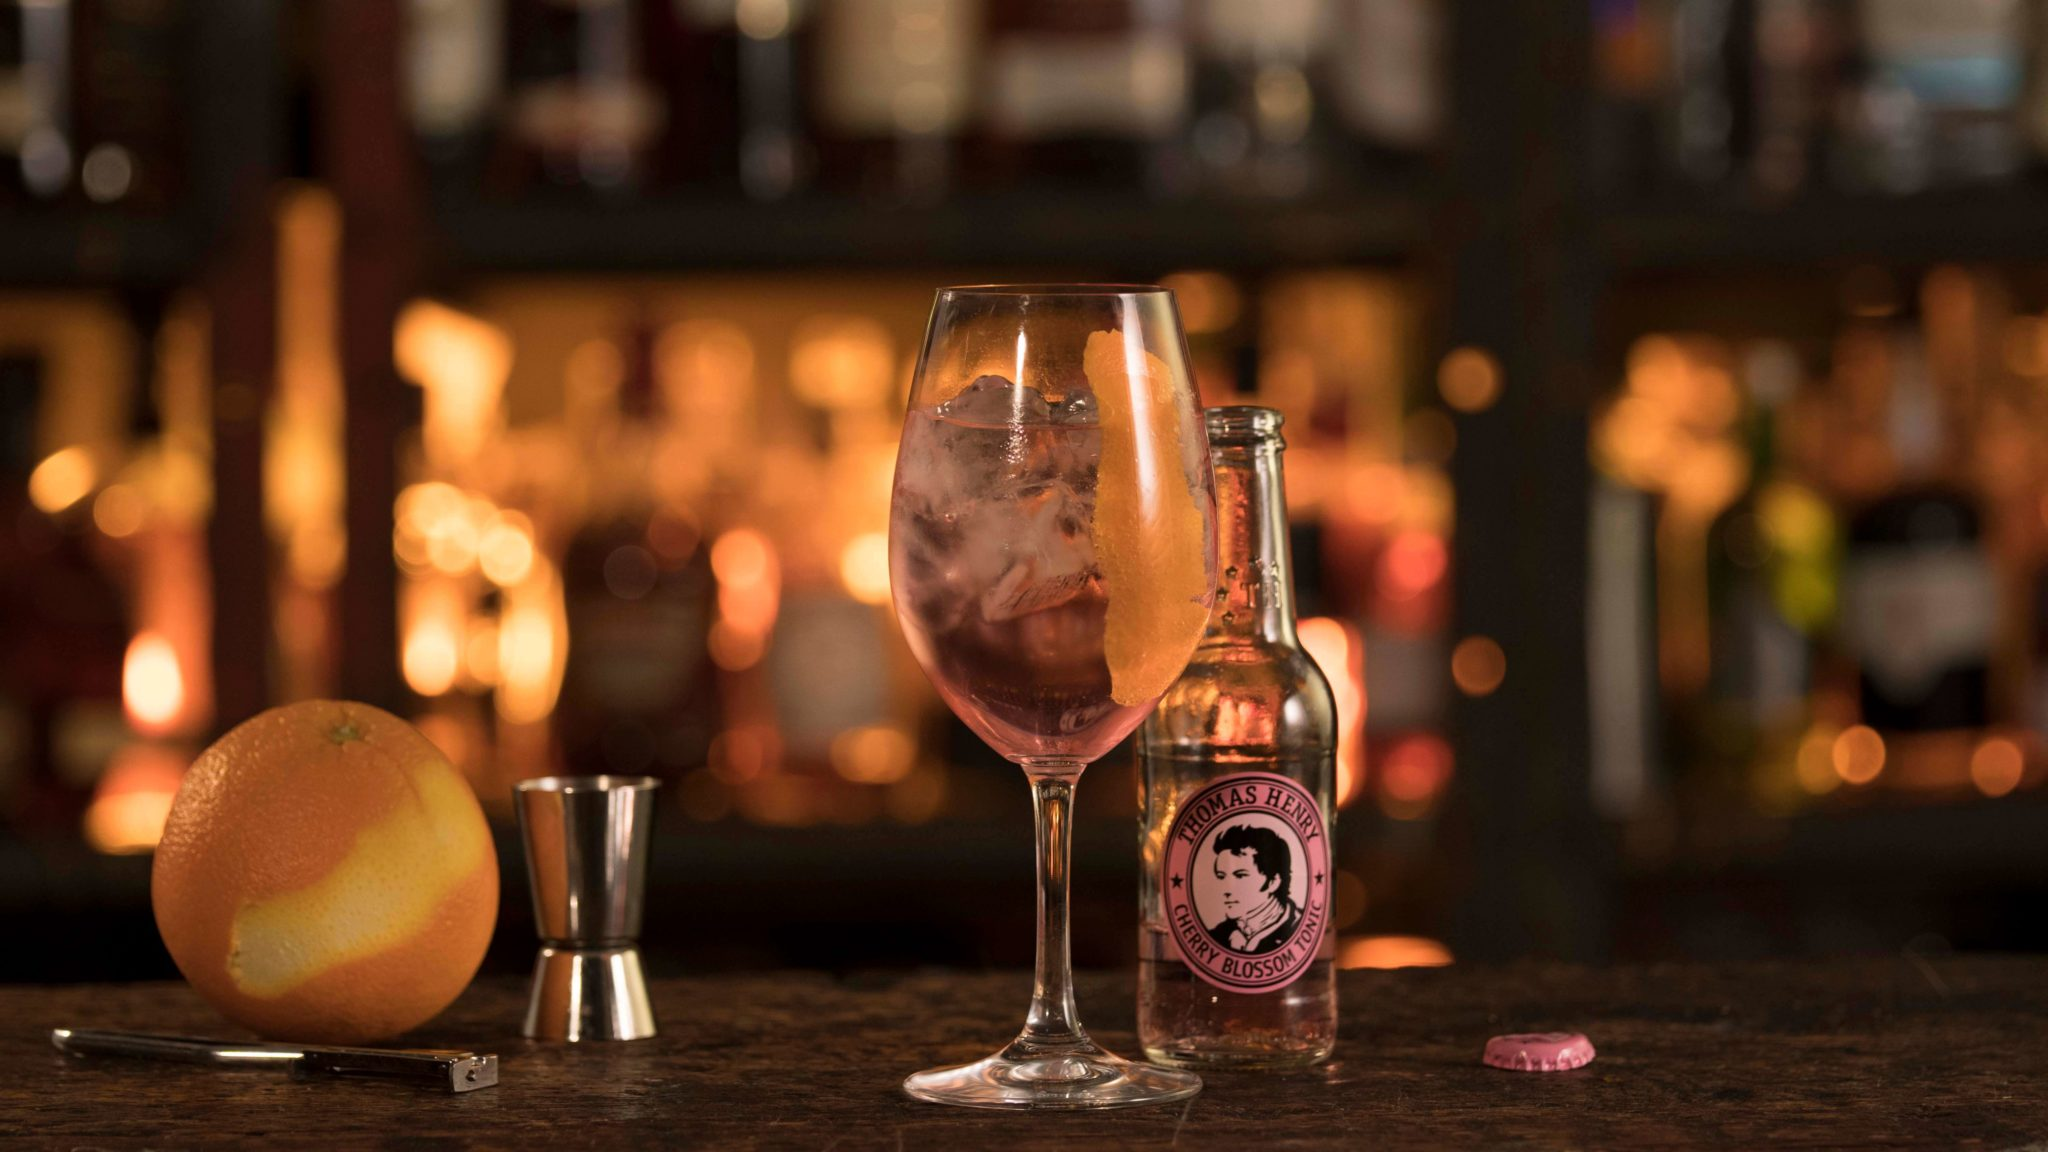 Der Bloomy Cup mit Thomas Henry Cherry Blossom Tonic